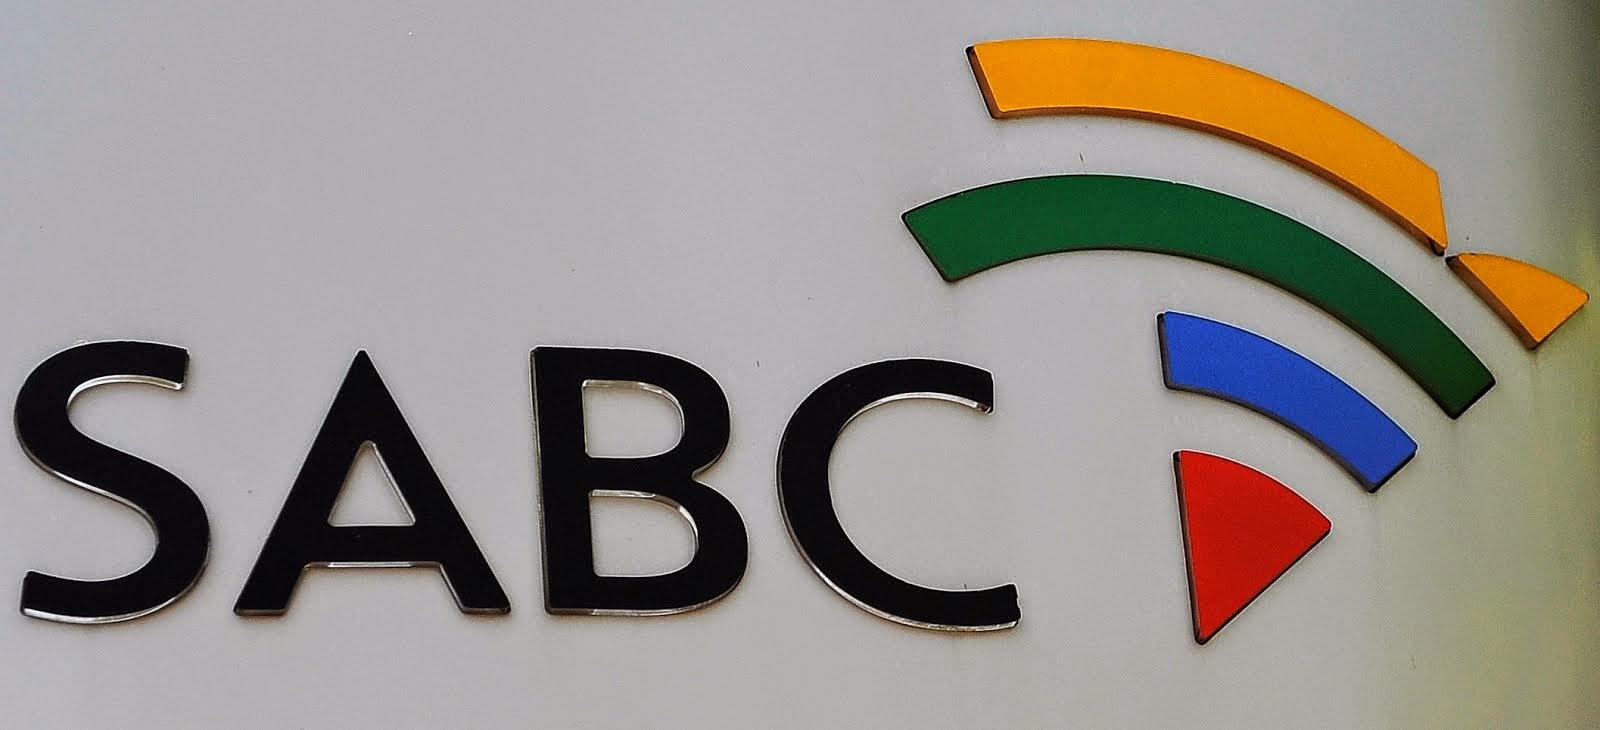 SABC SUSPENDS ITS OWN TECH BOSS AFTER HIS SHOCKING REPORT ON SABC'S CRUMBLING INFRASTRUCTURE